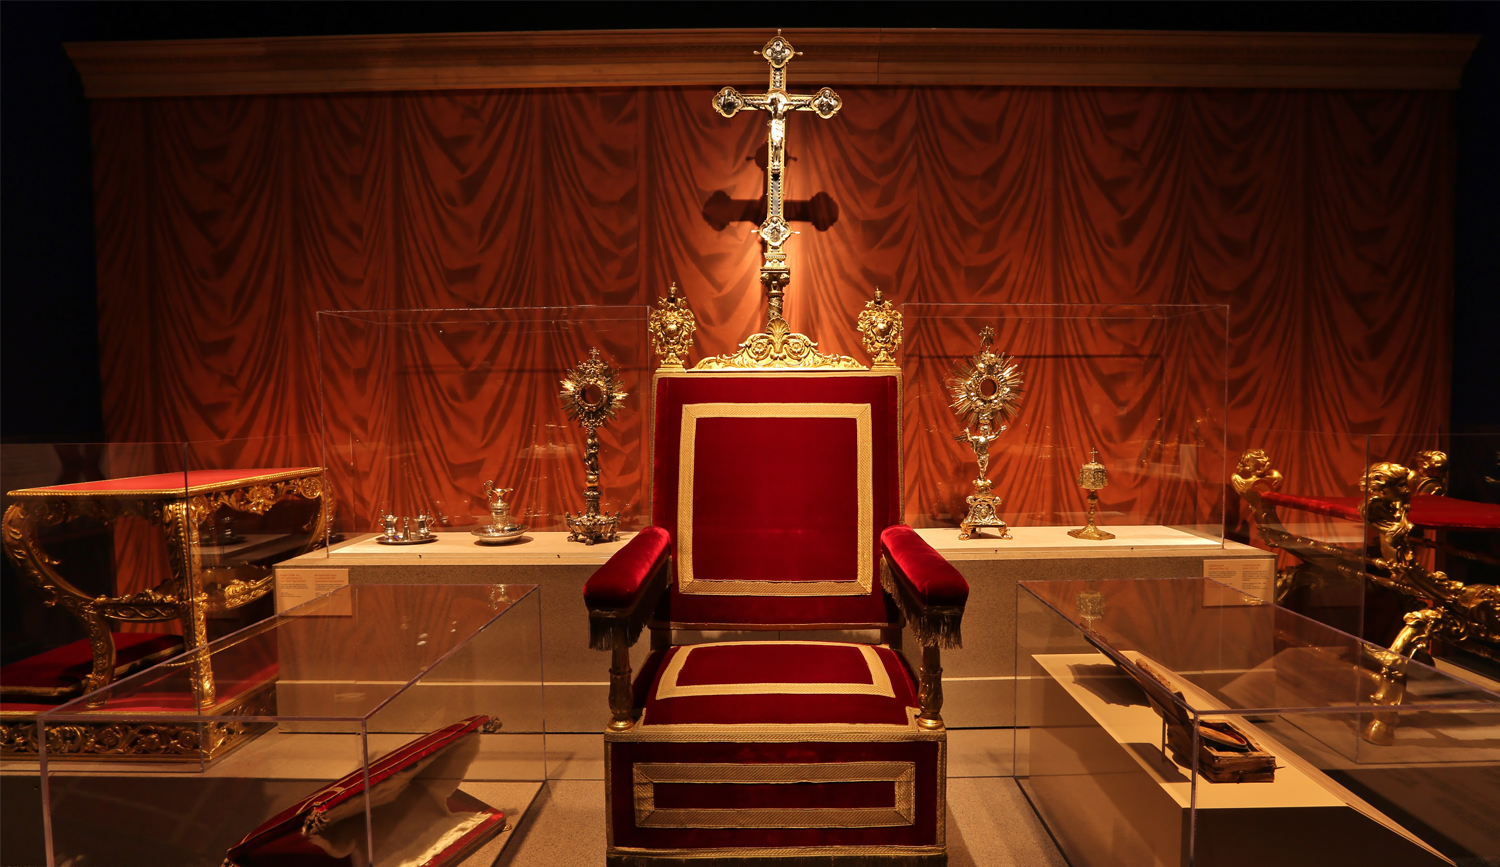 Vatican Splendors Exhibit at The Franklin Institute